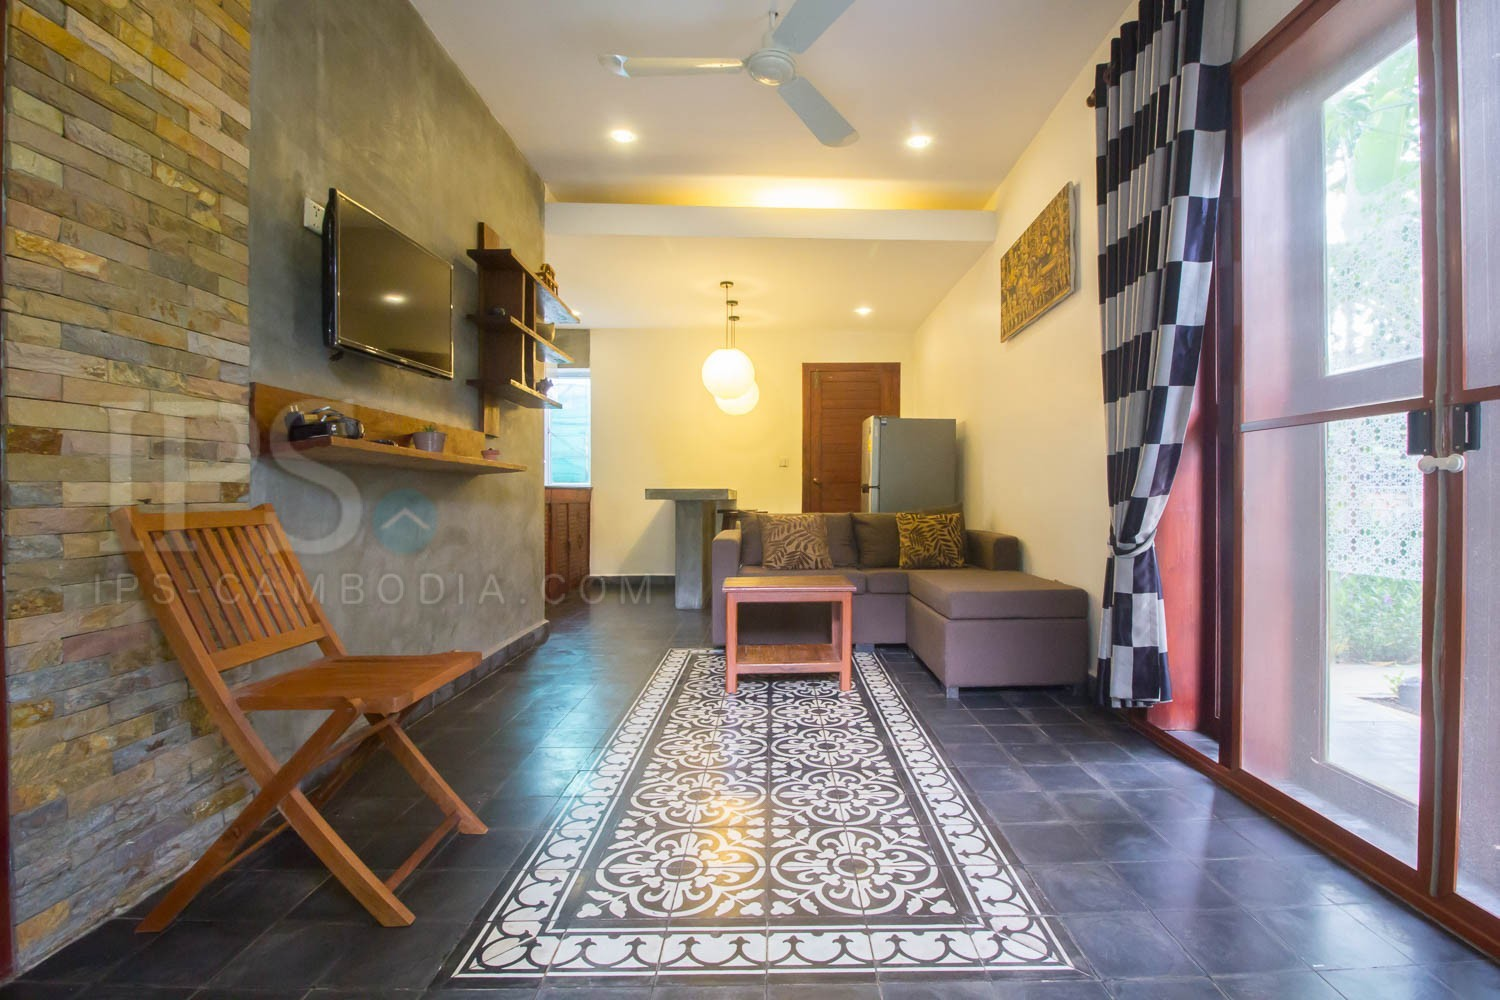 1 Bedroom  Apartment For Rent - Svay Dangkum, Siem Reap